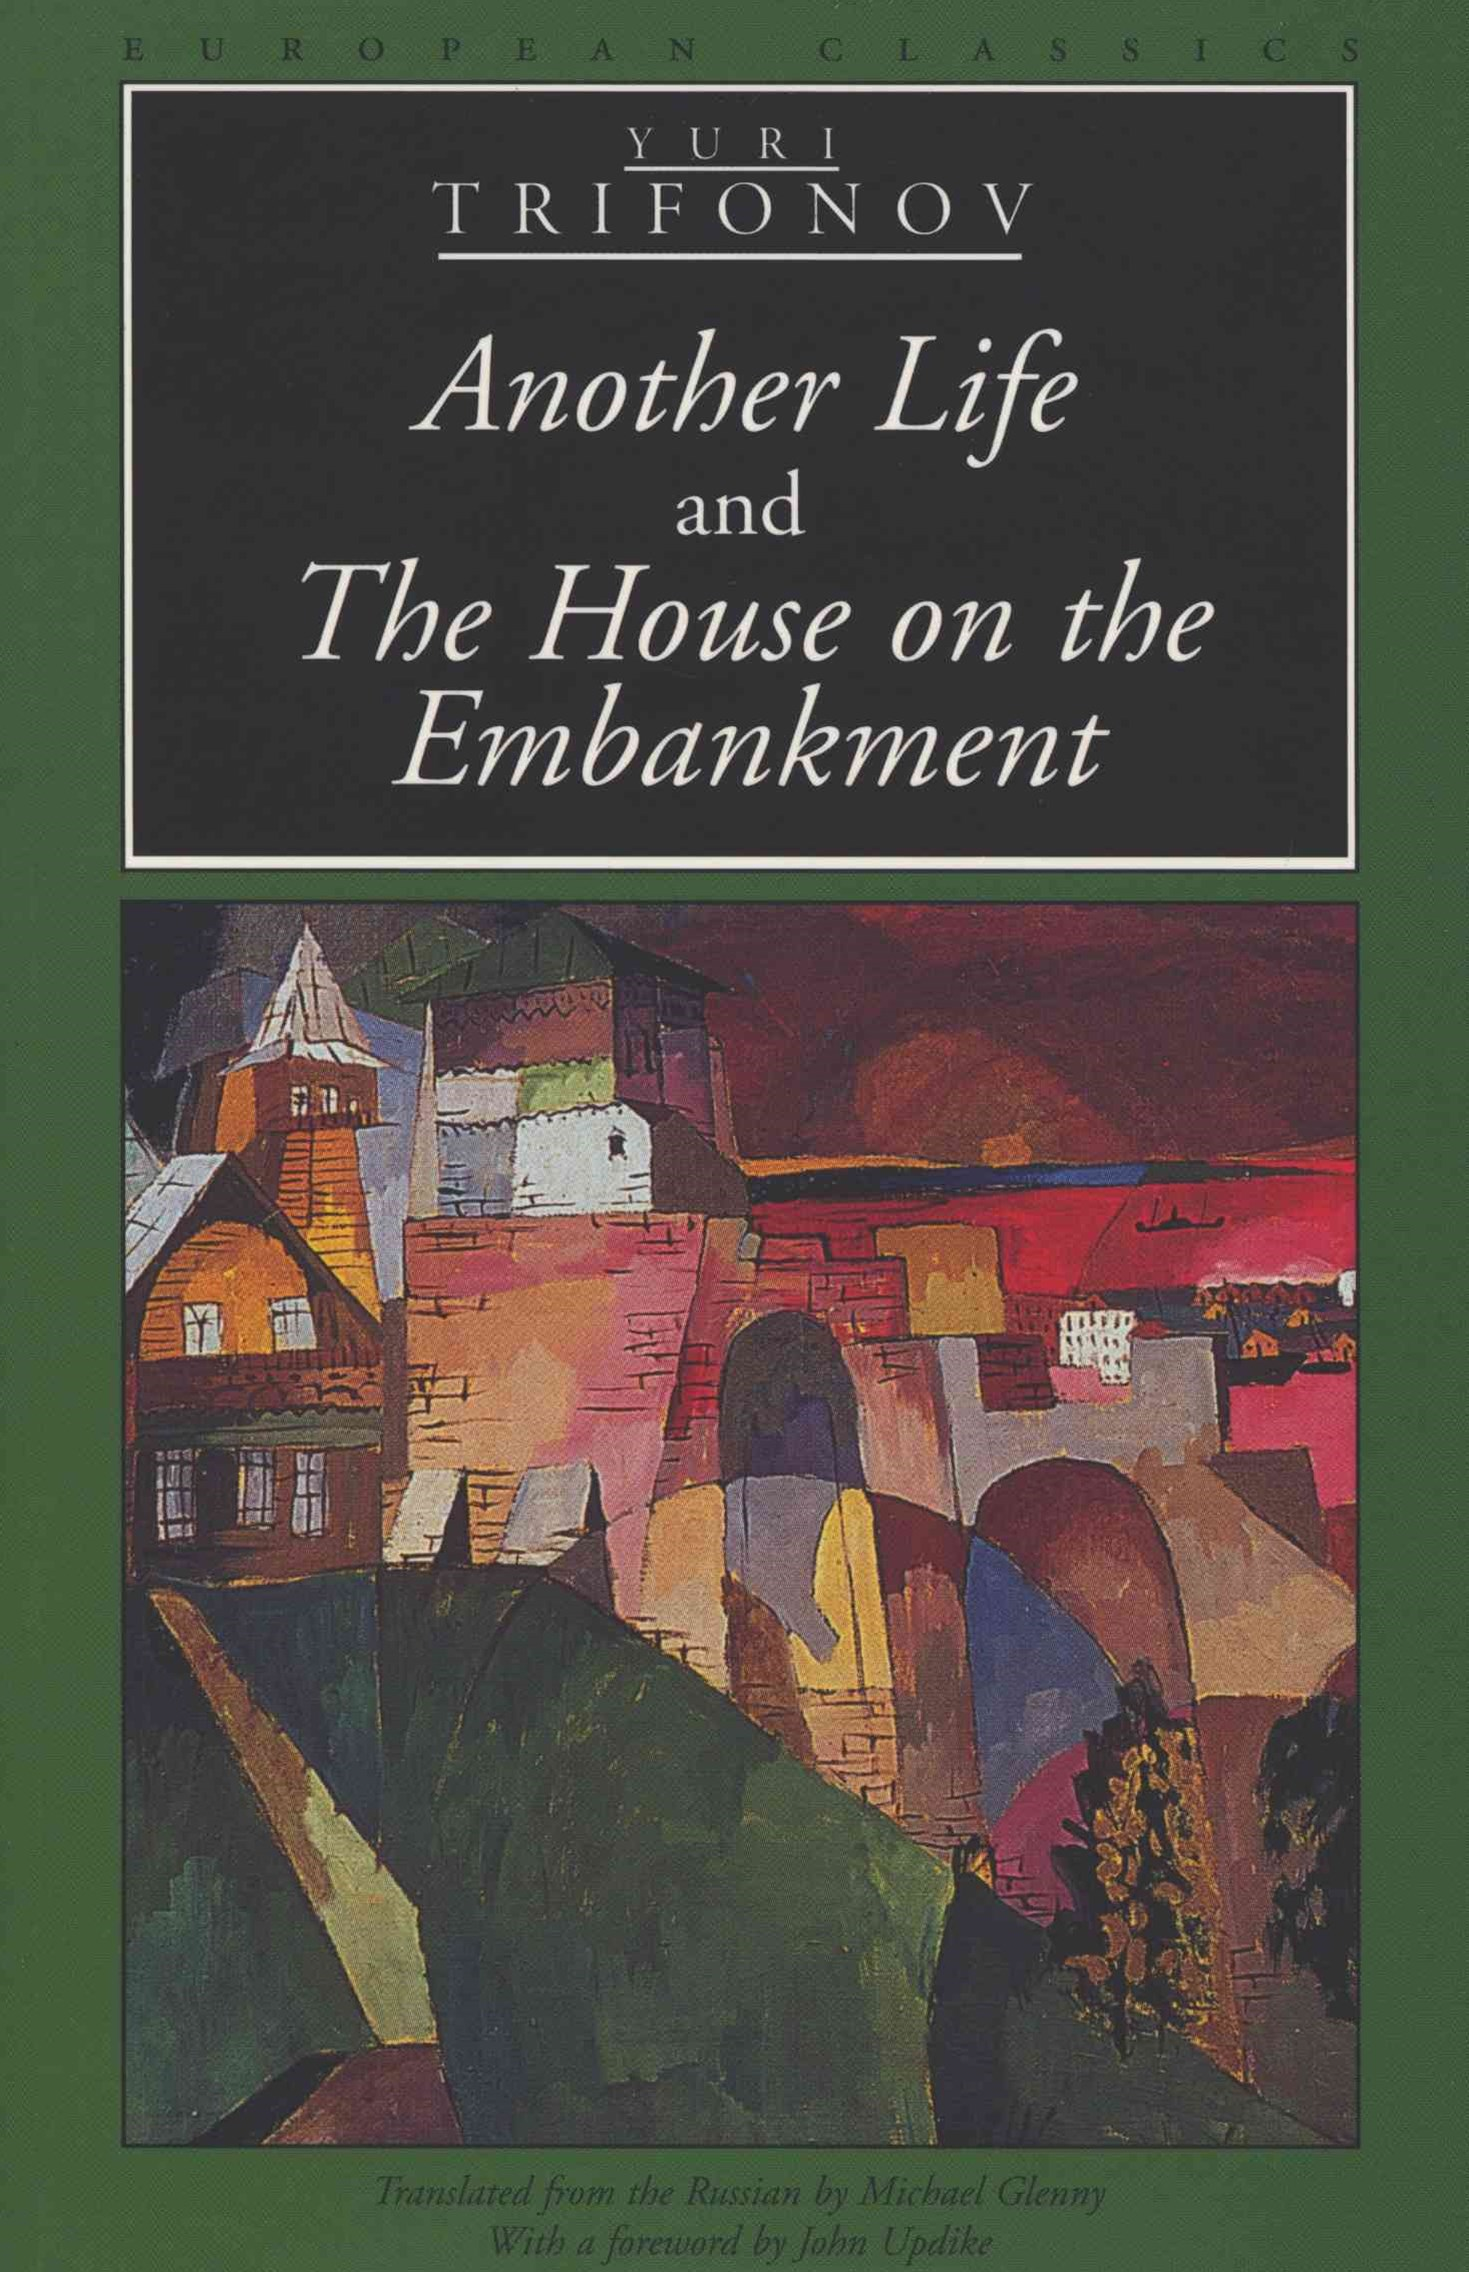 &quote;Another Life&quote; and &quote;the House on the Embankment&quote;